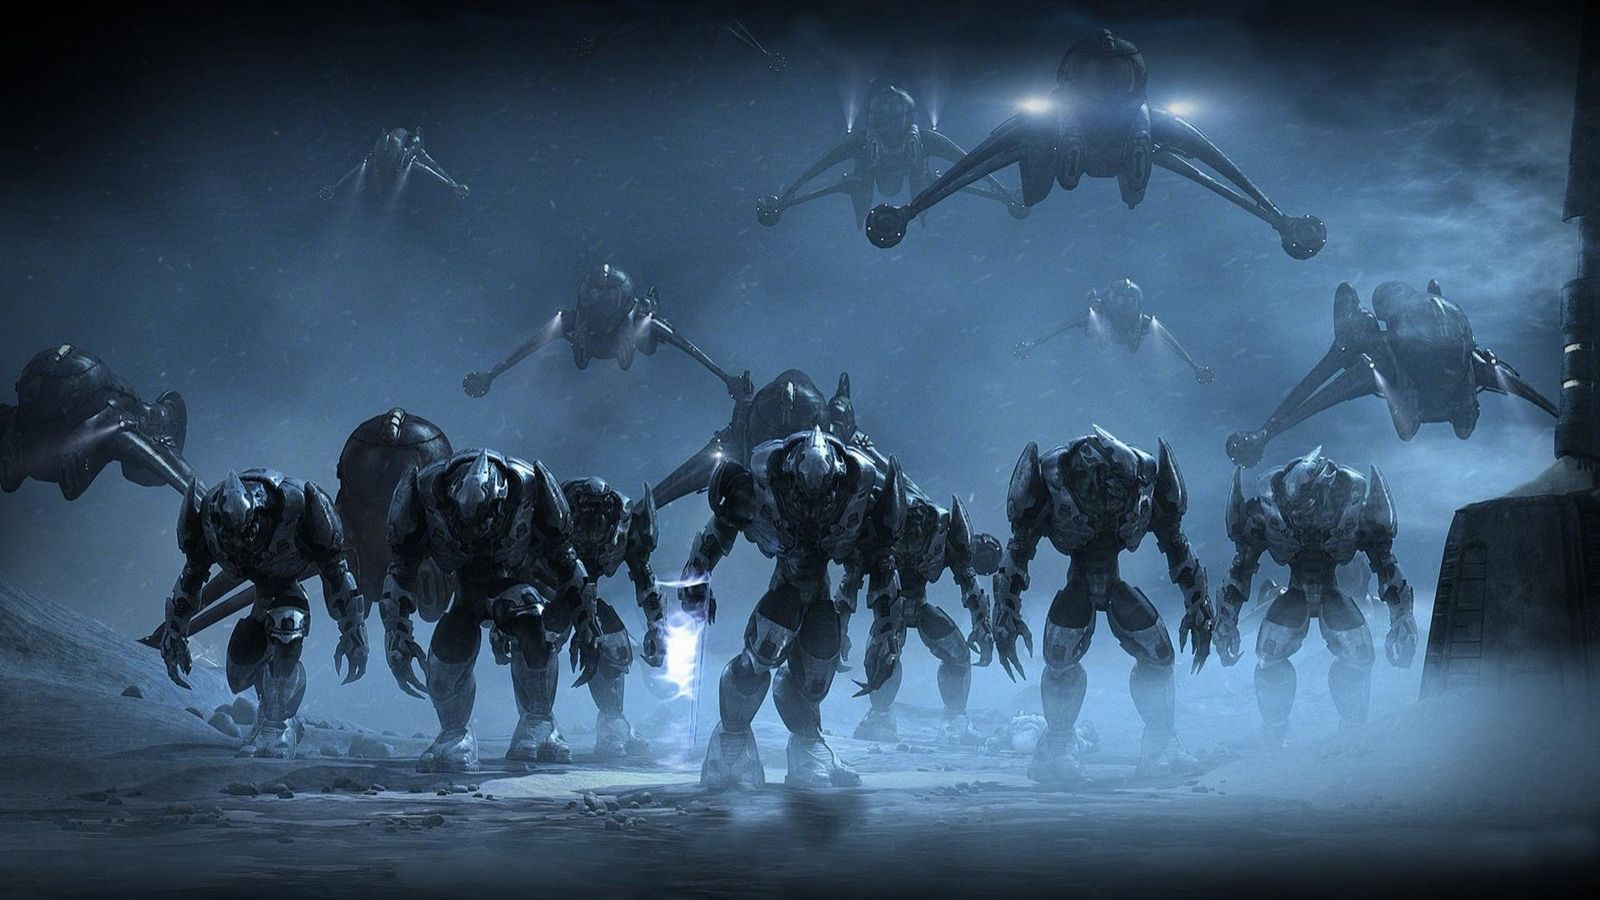 halo army airships night